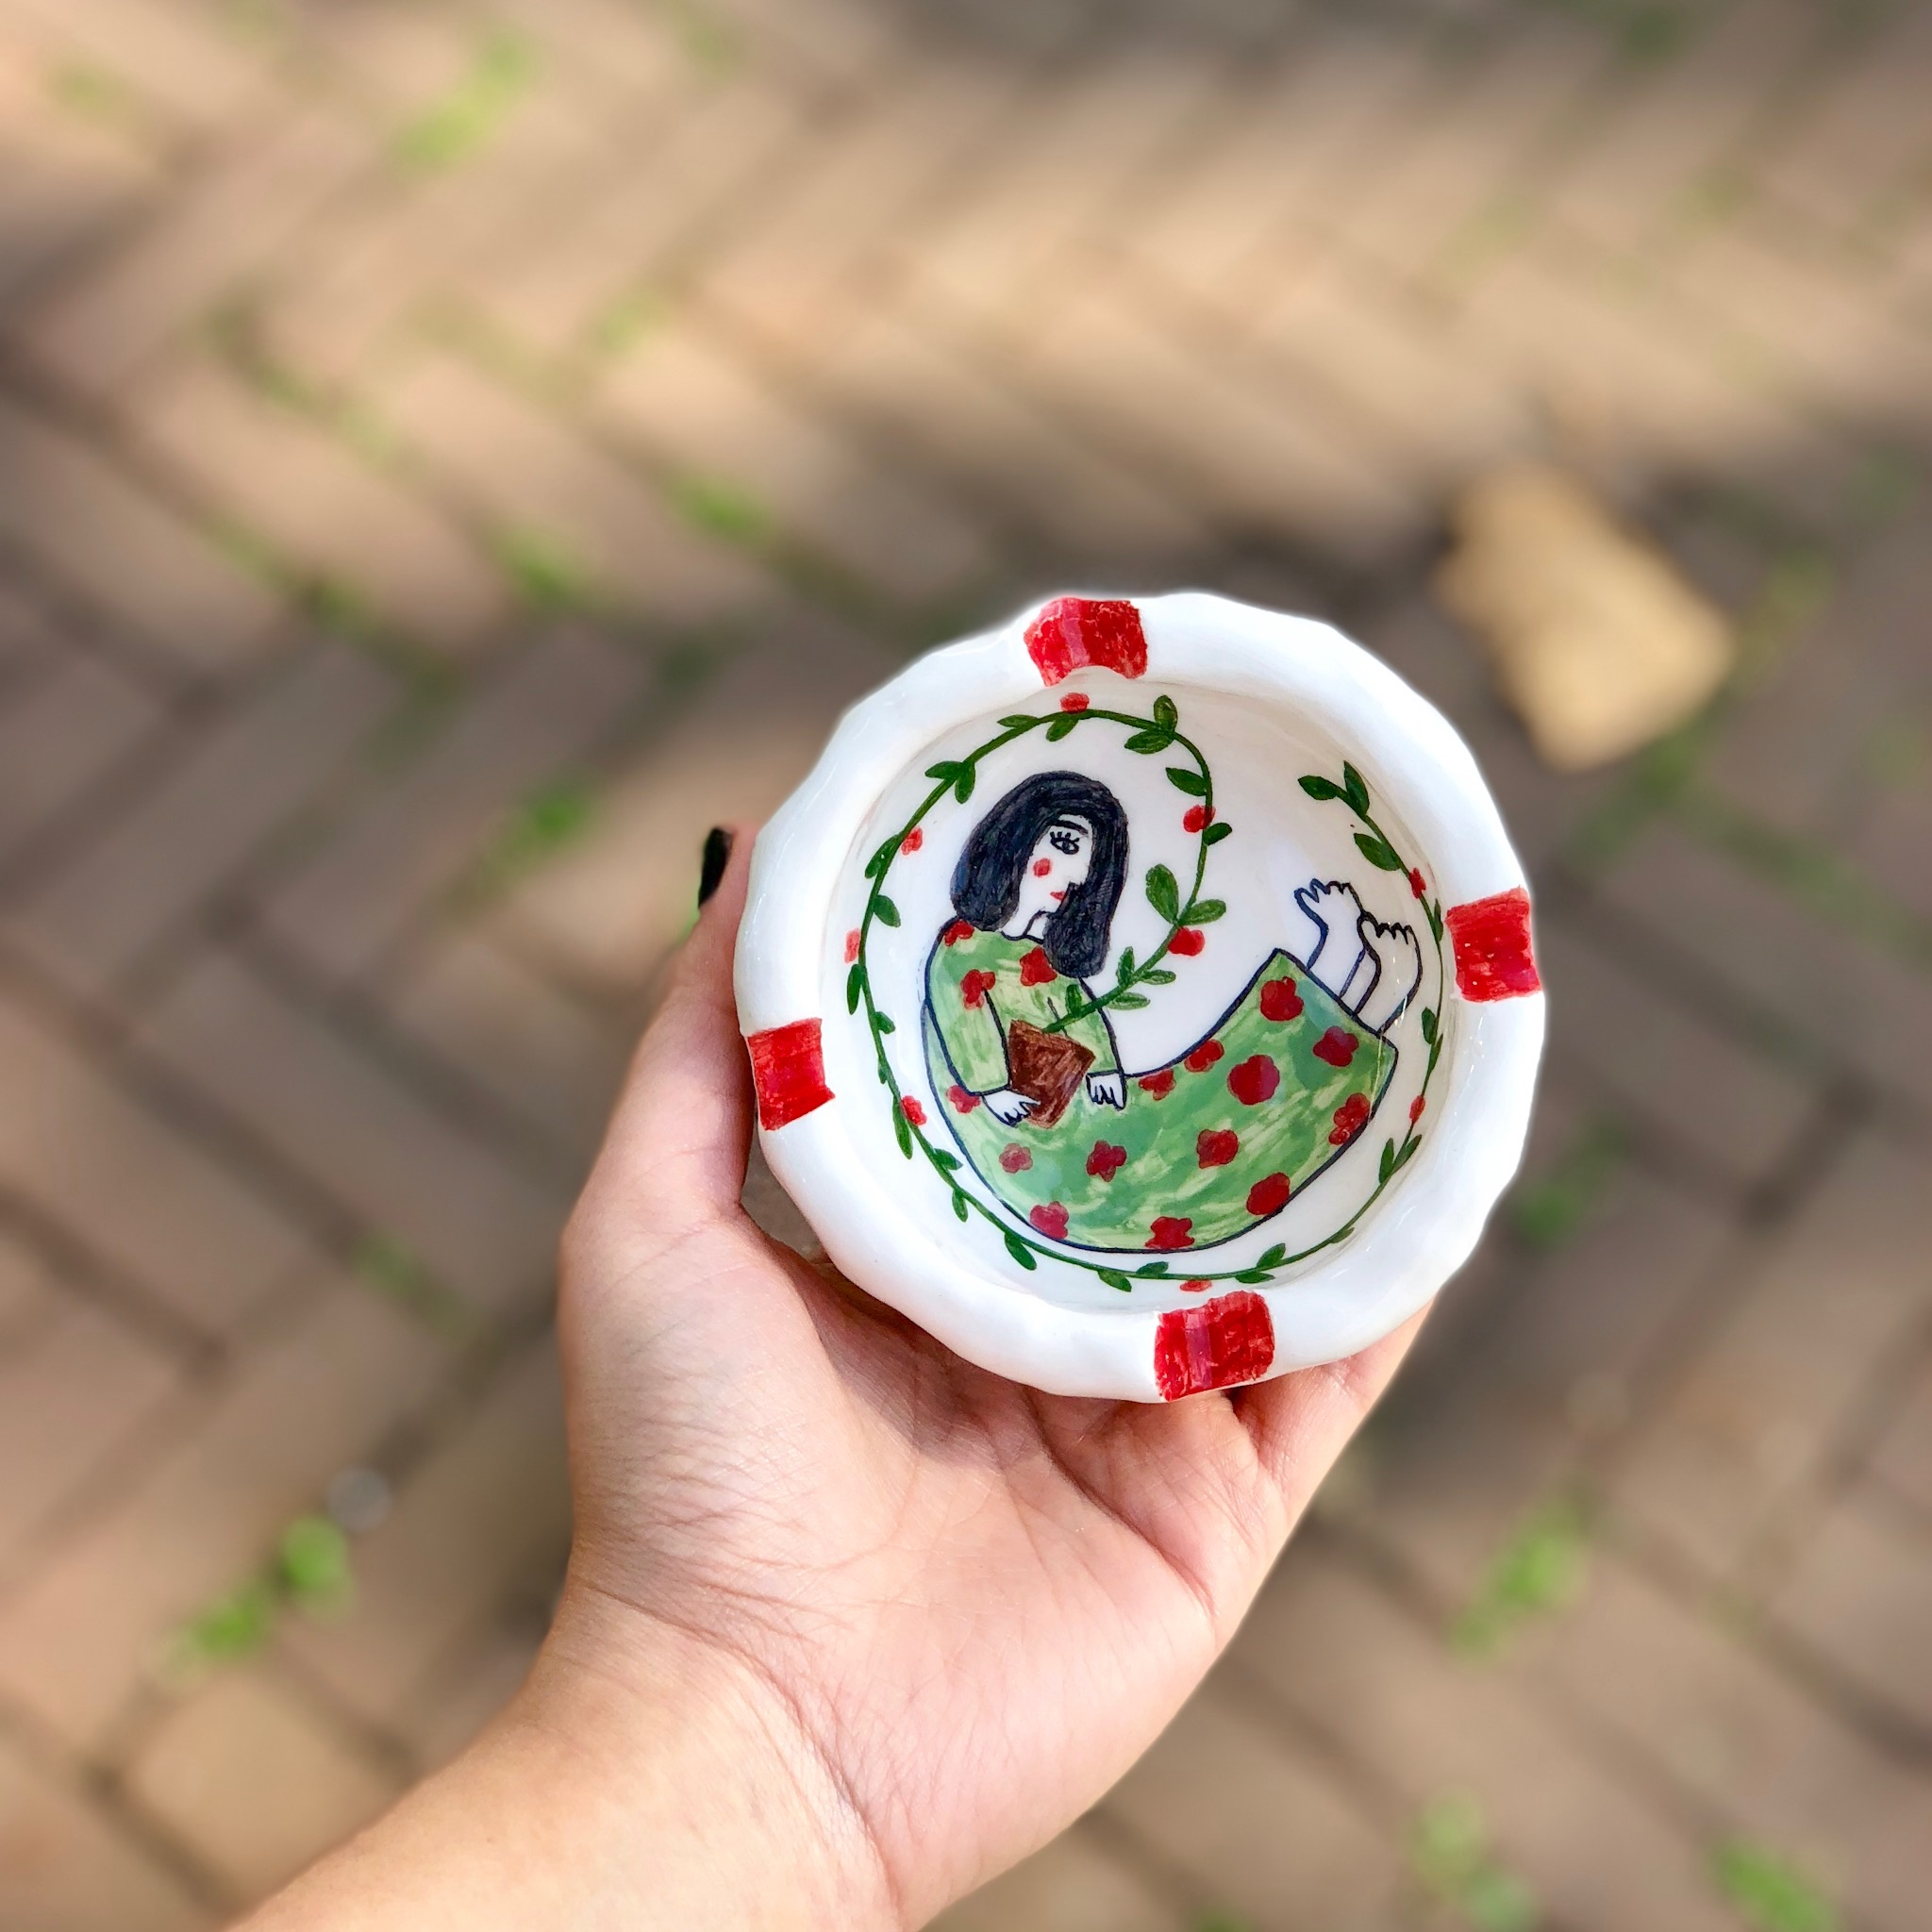 Handmade ceramic ashtray by NamArtcraft شمعدونی